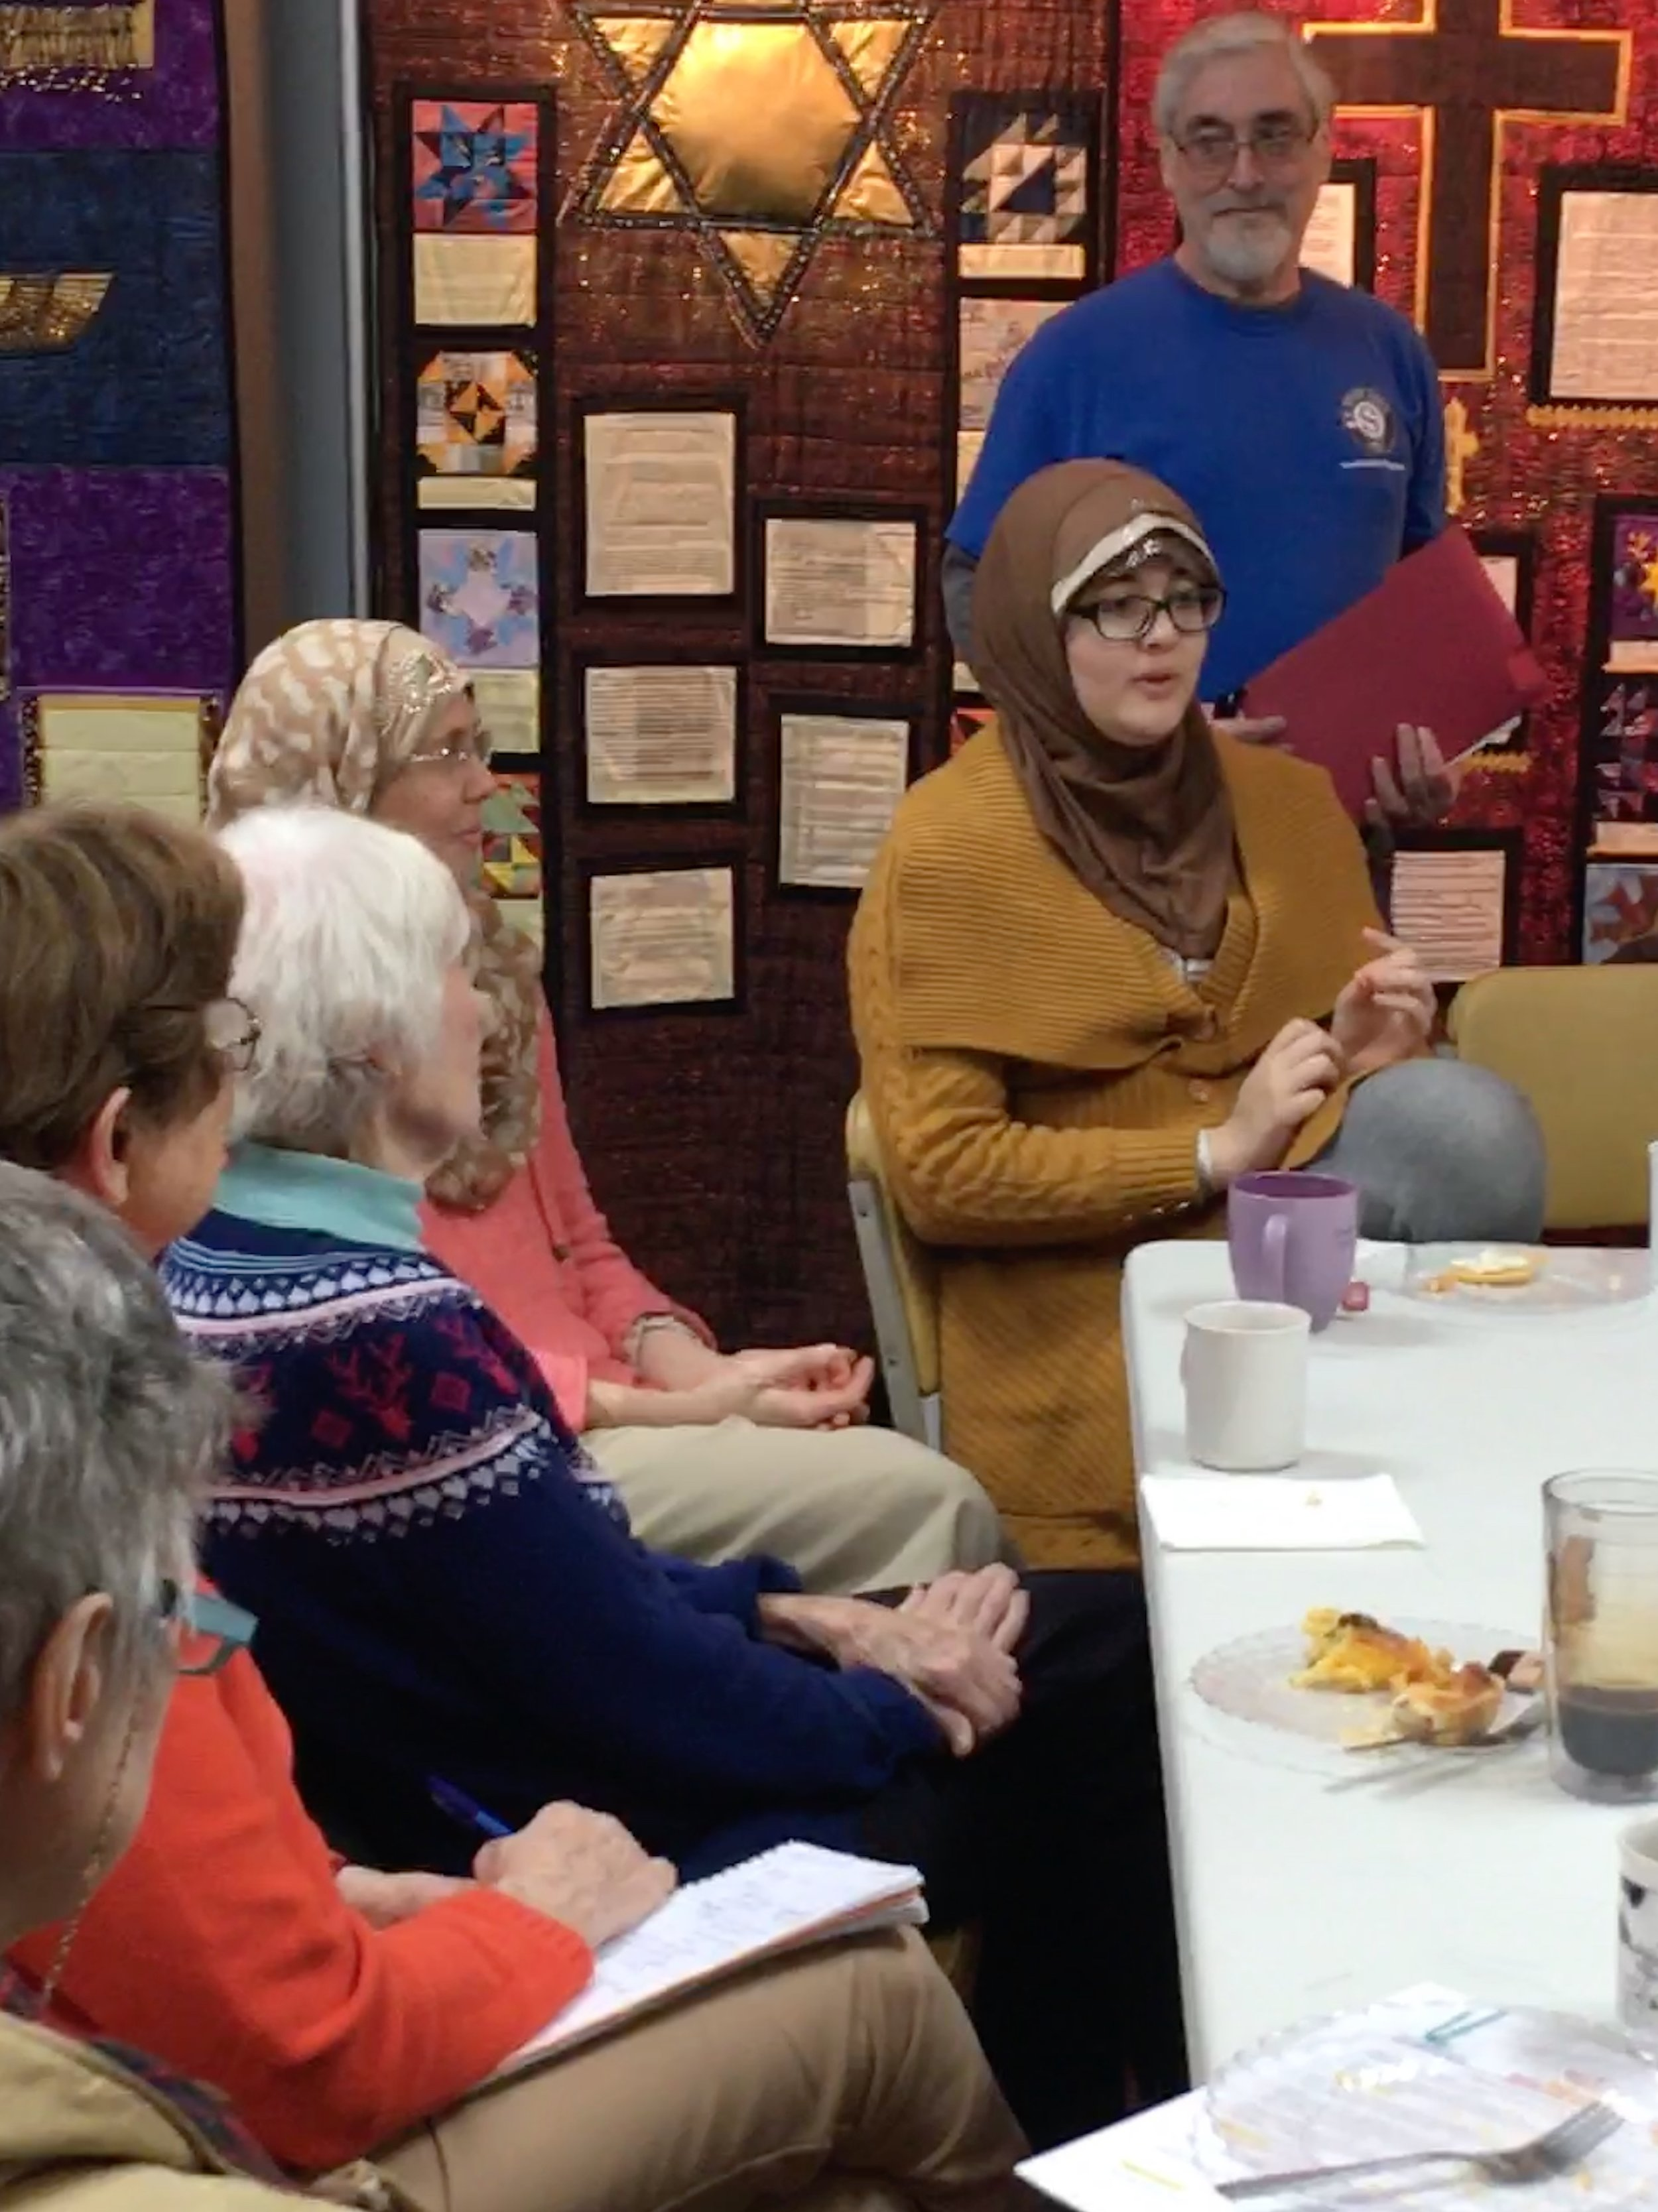 The Museum holds monthly volunteer breakfasts for current volunteers and those interested in becoming more involved. Look for announcements on the next event.